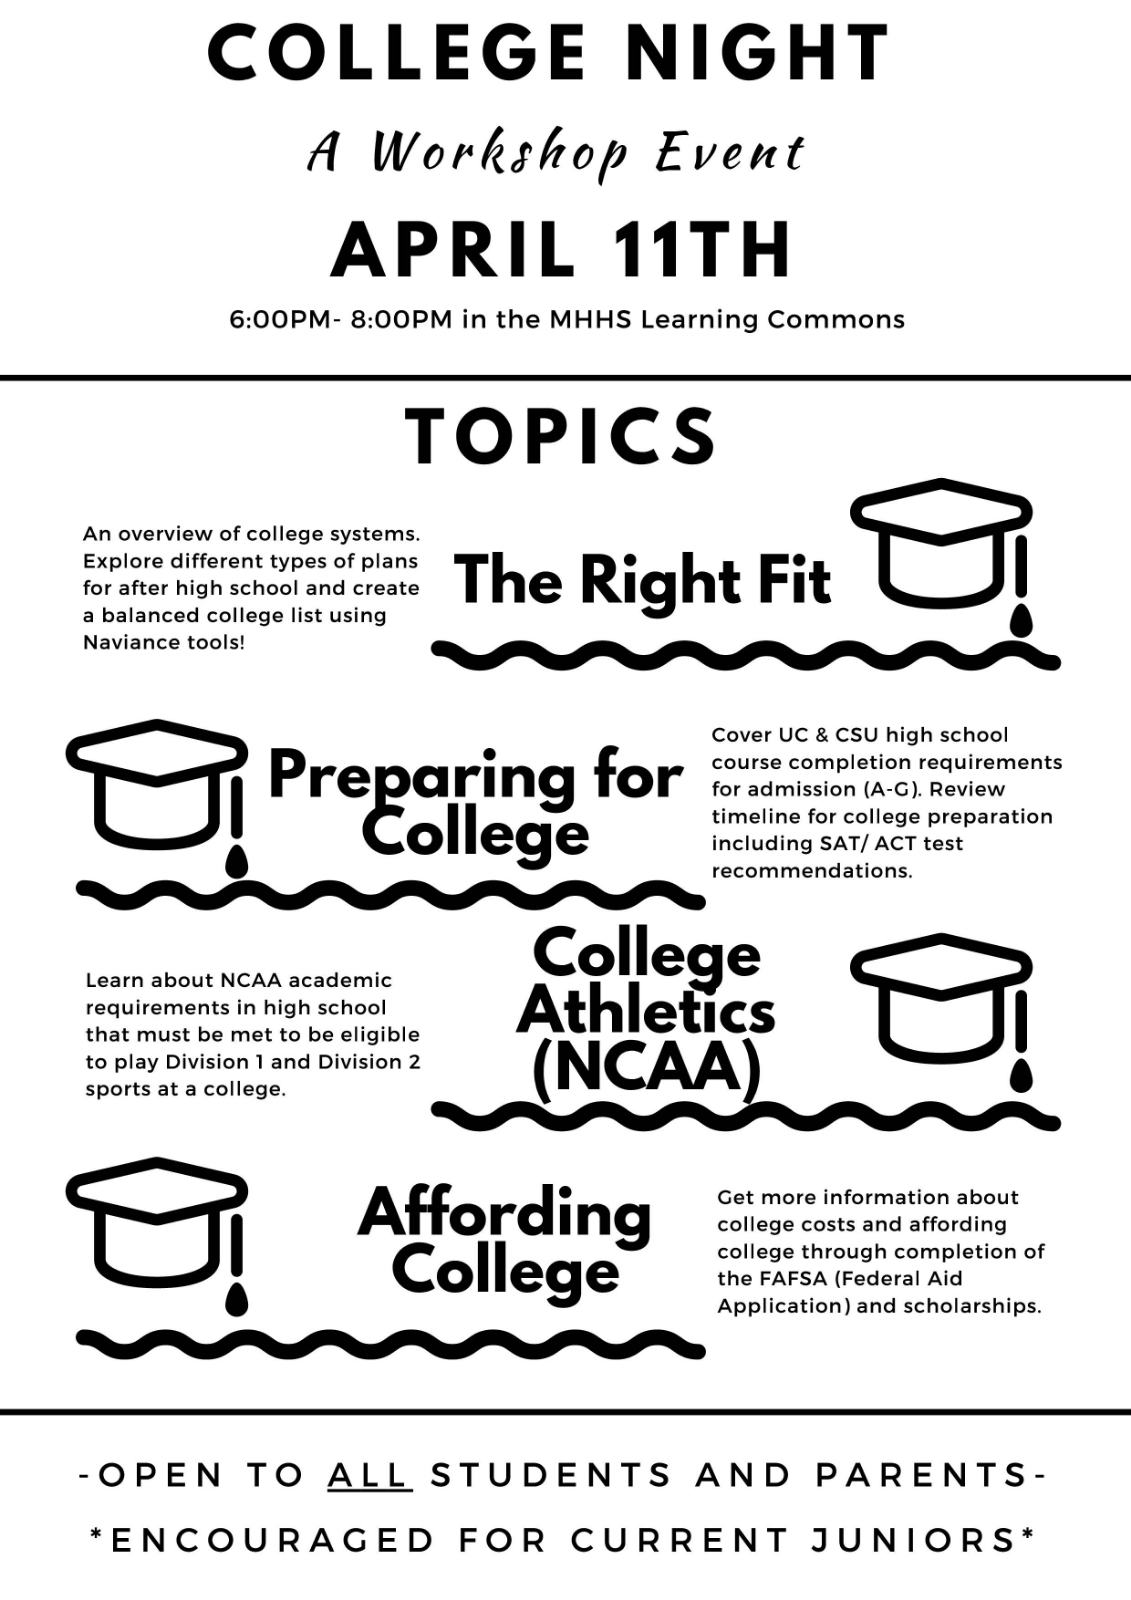 MHHS College Night April 11th